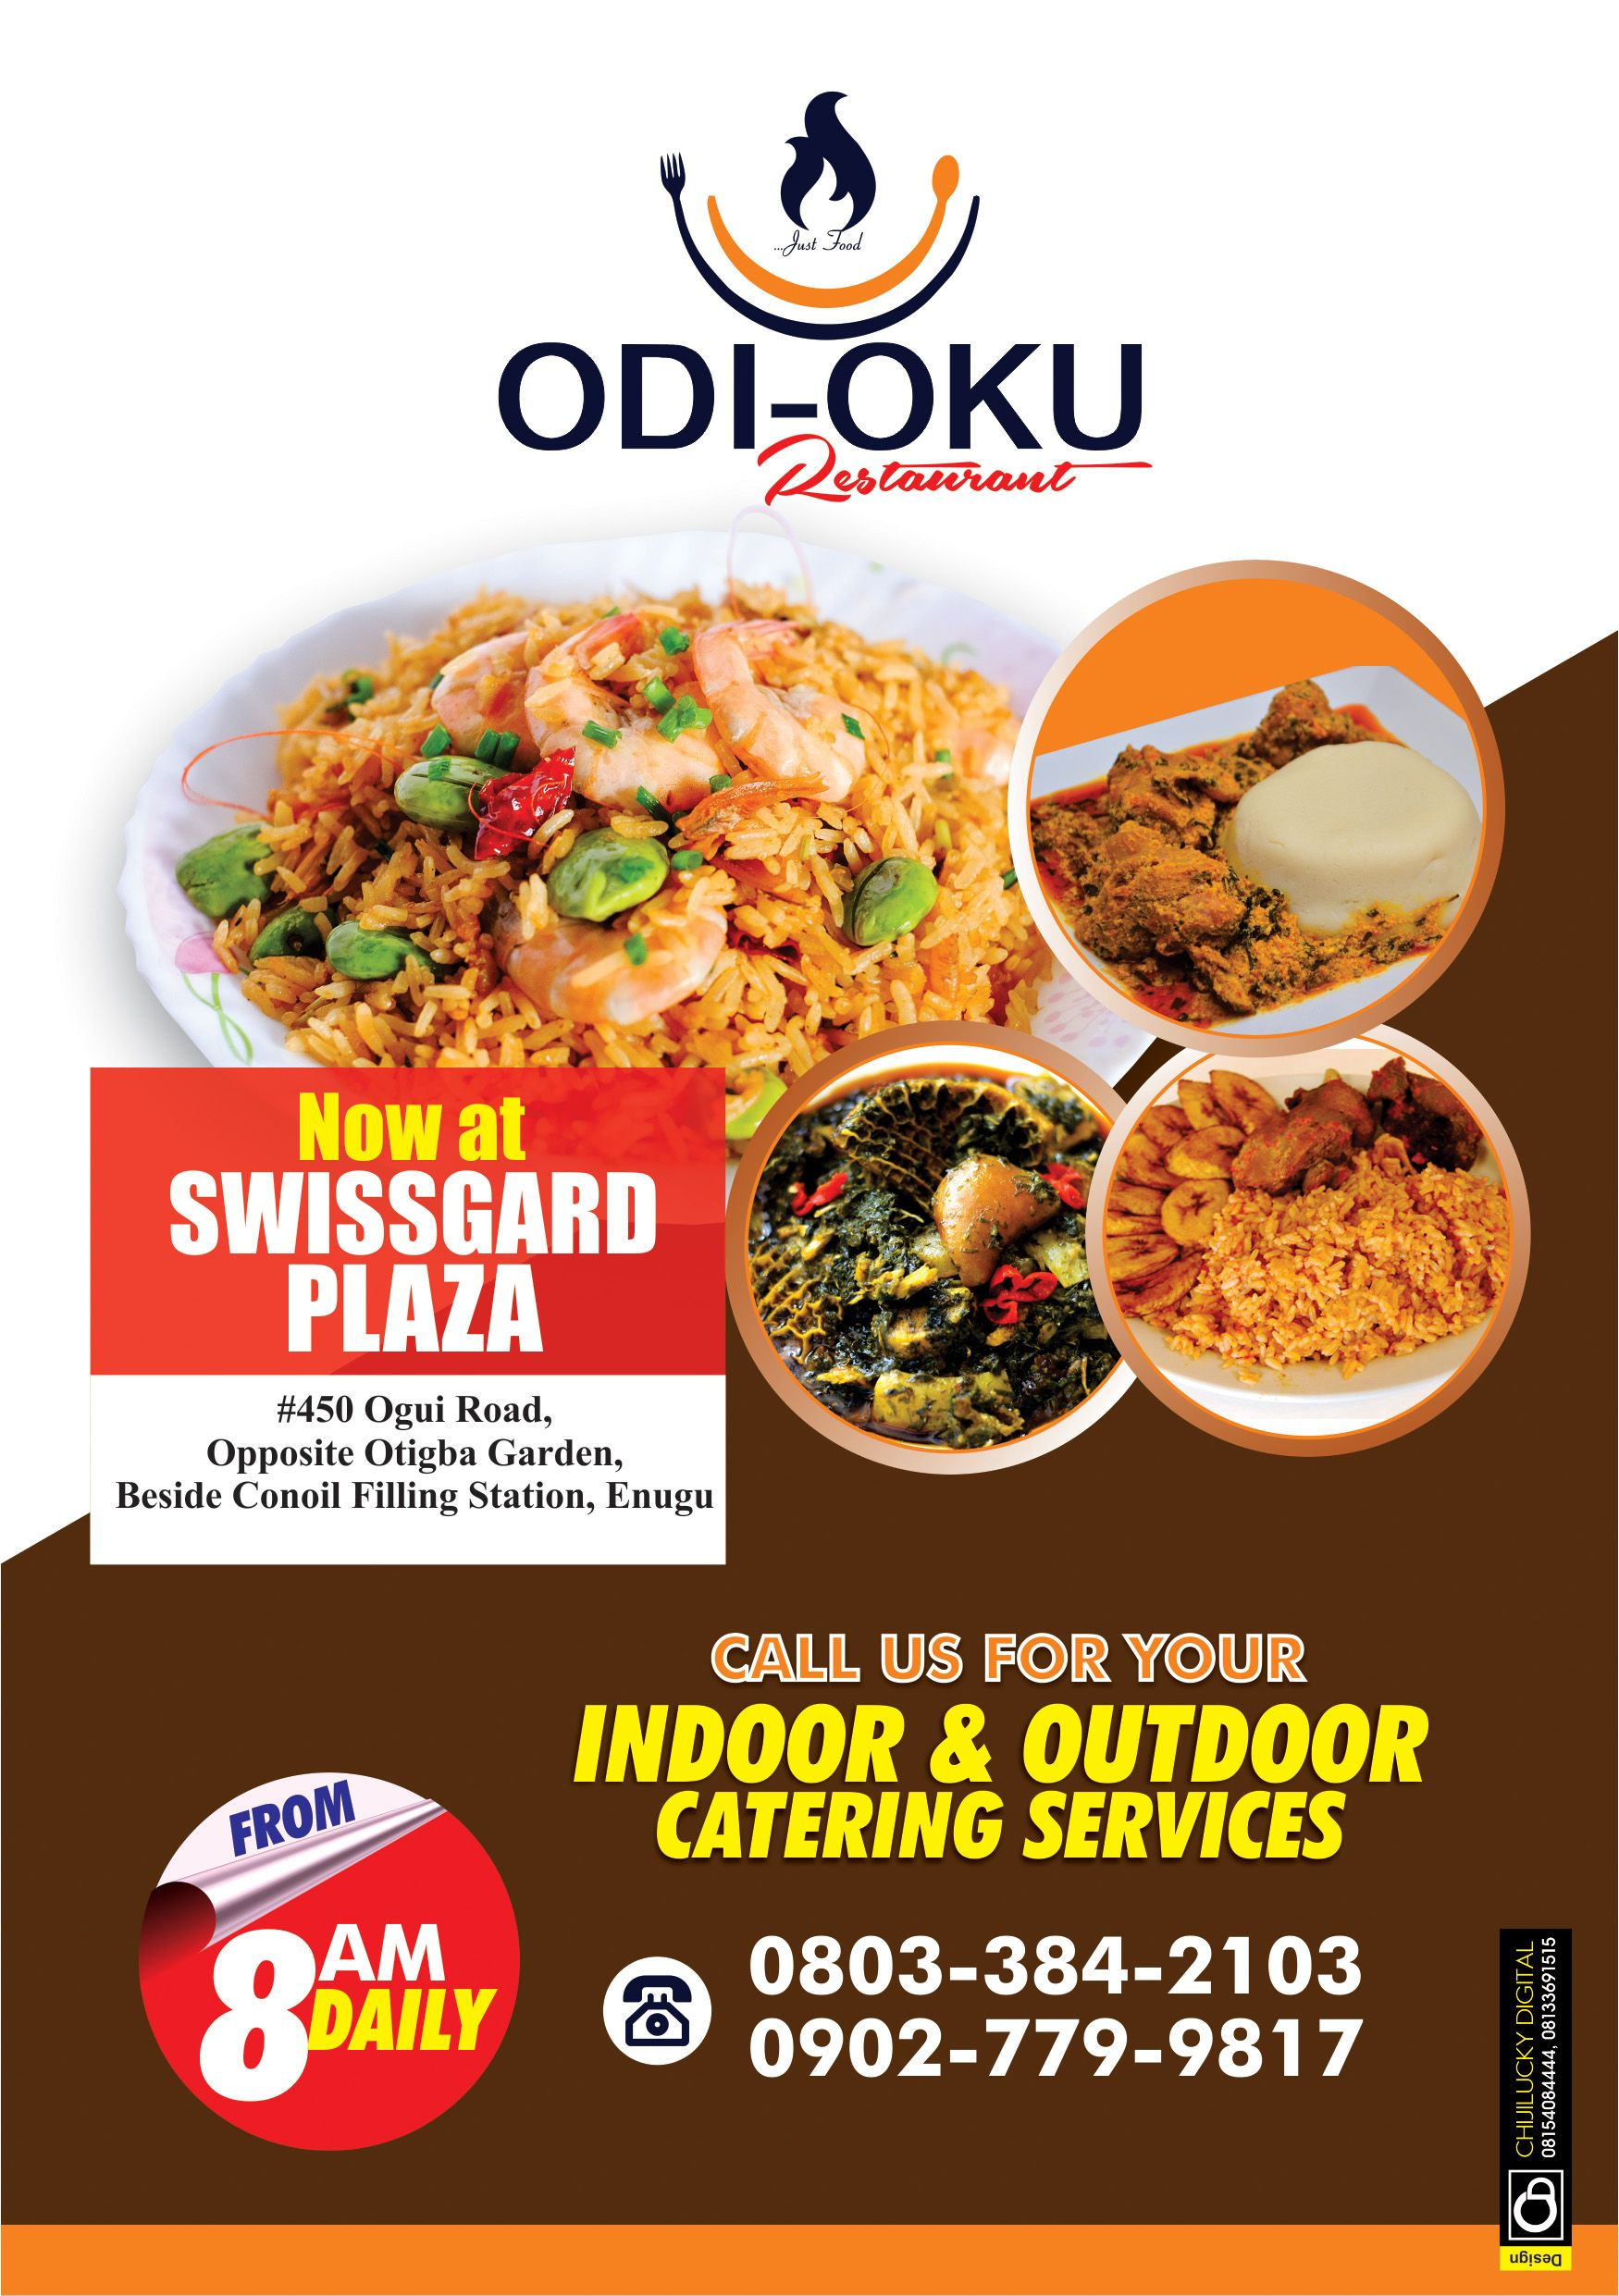 Catering Service Flyer Design